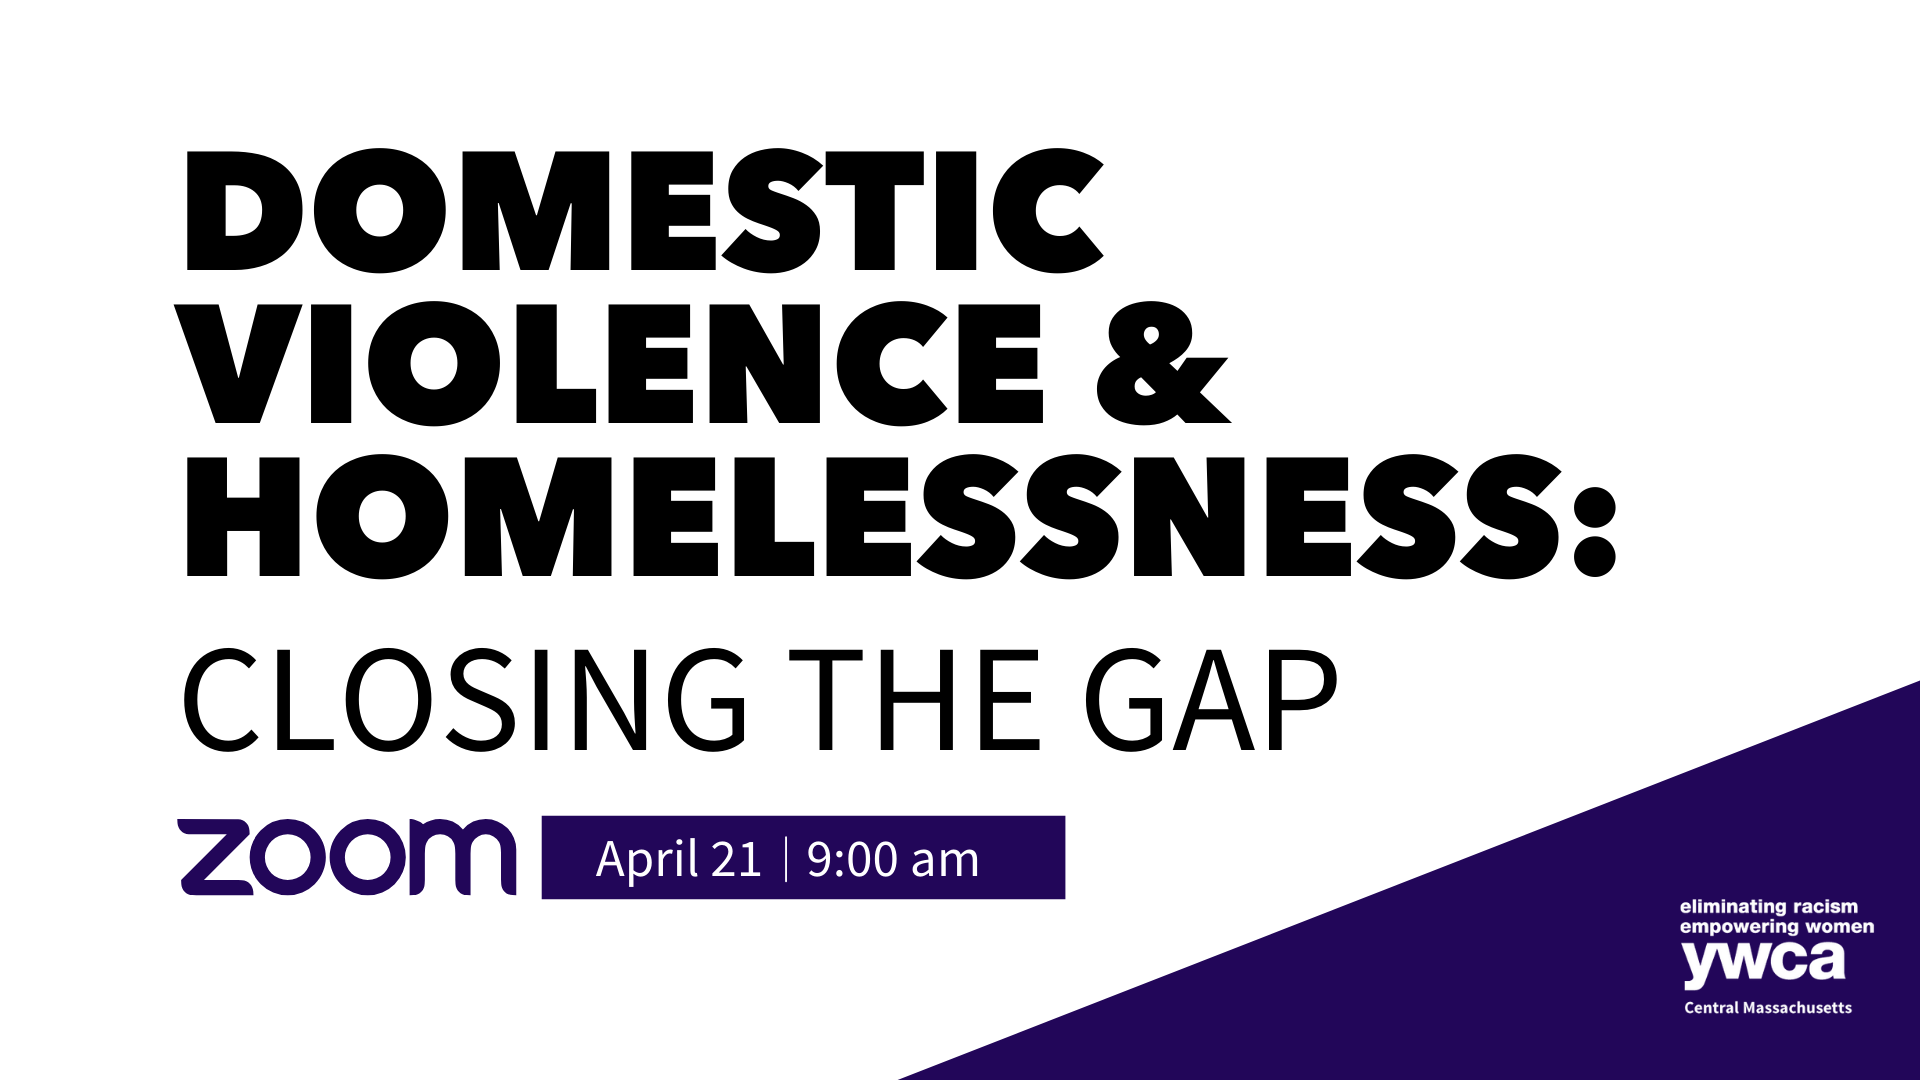 DomesticViolence and Homelessness_ Closing the Gap